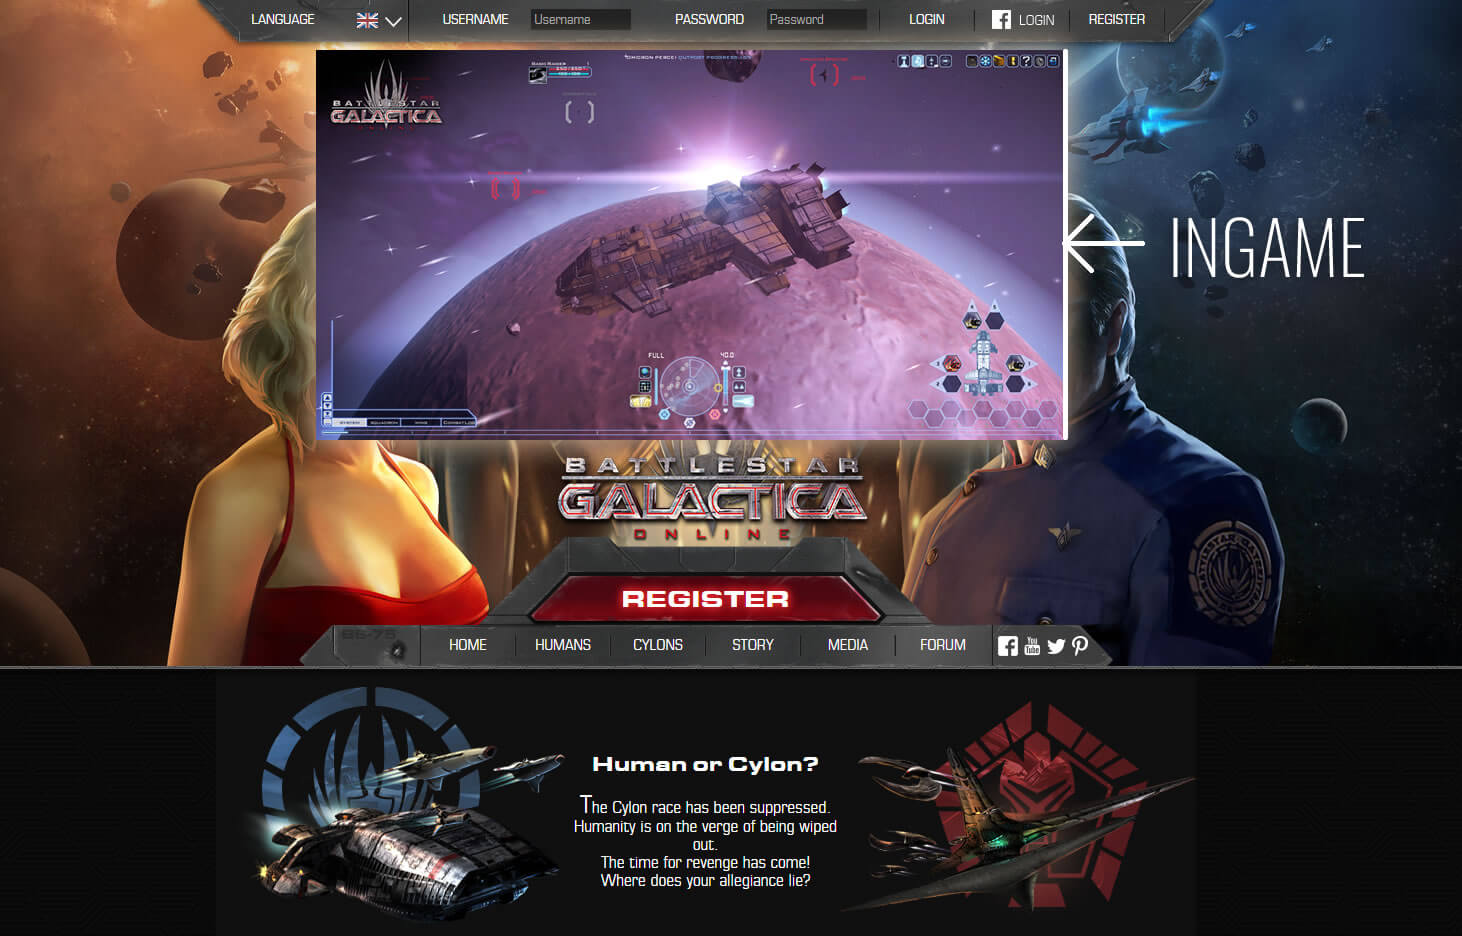 Battlestar Galactica Online Space Shooter MMO